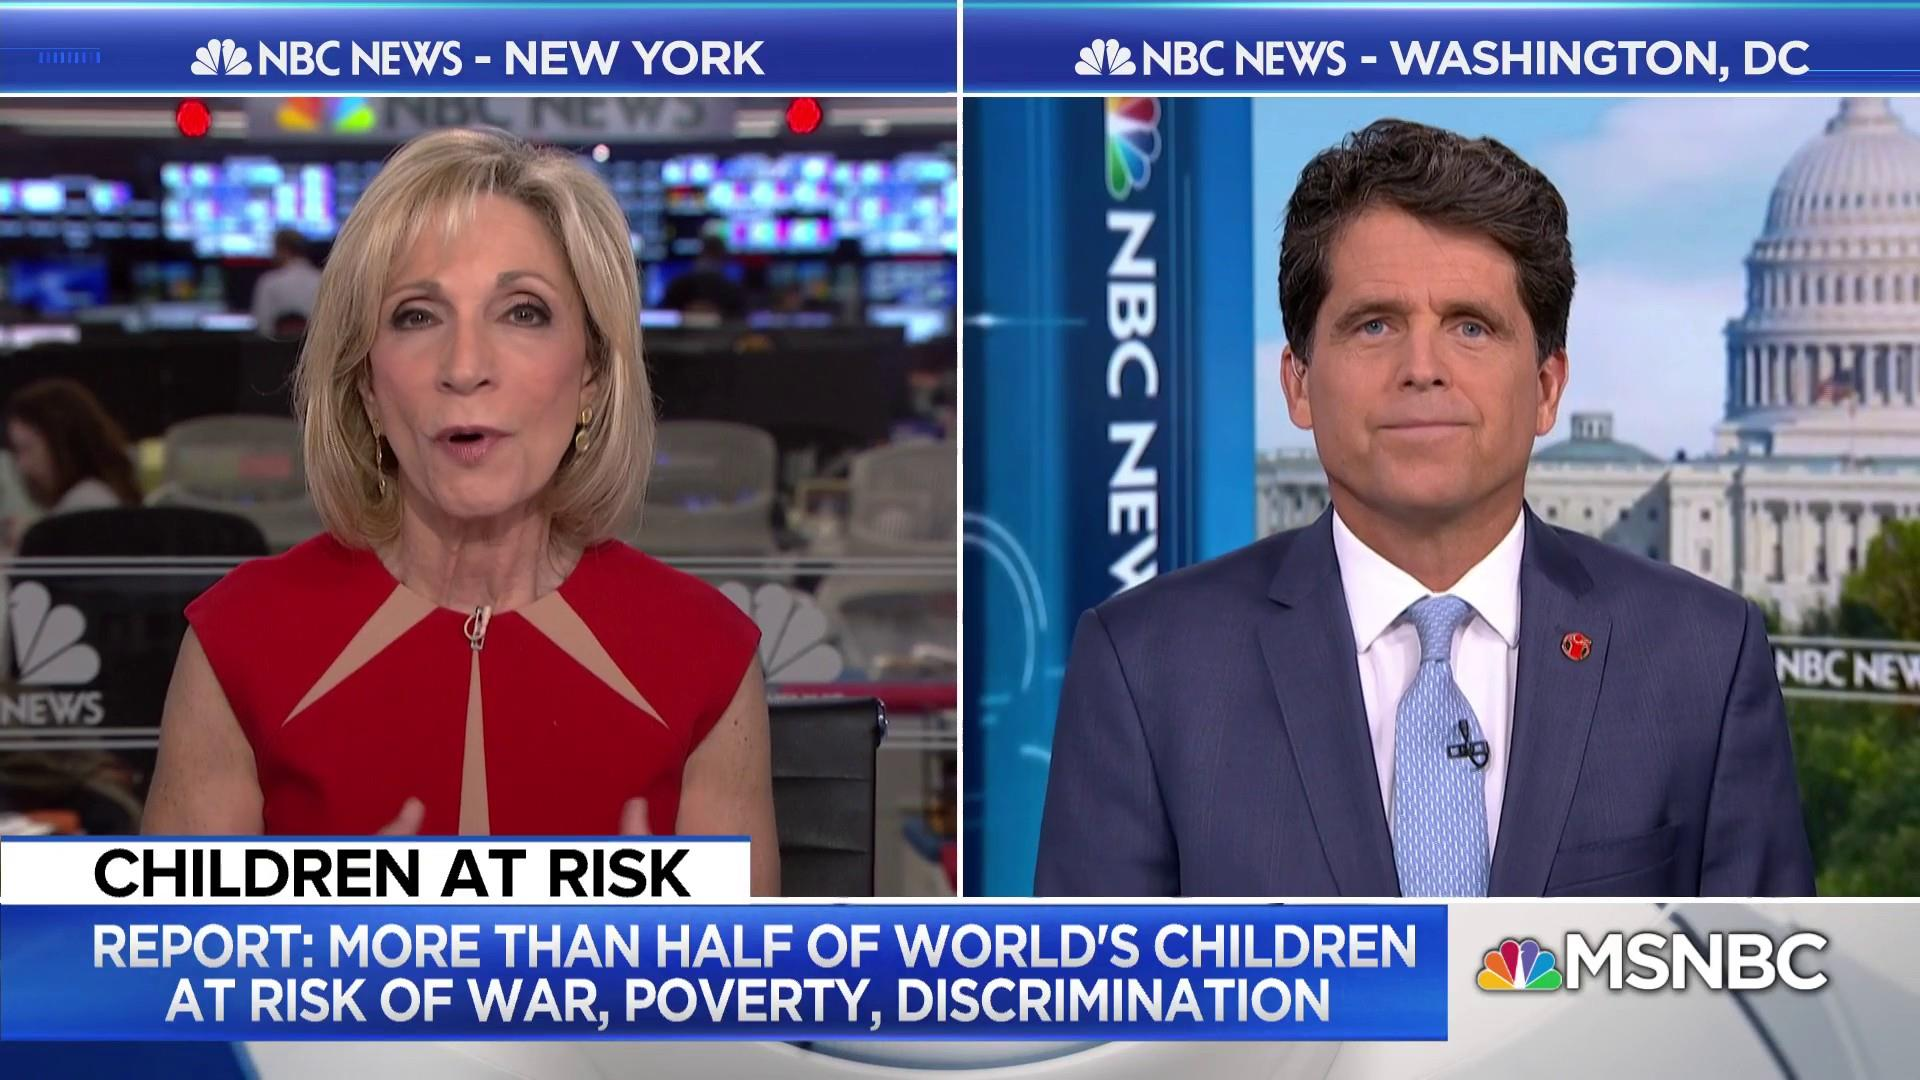 'Save the Children' working to combat poverty crisis